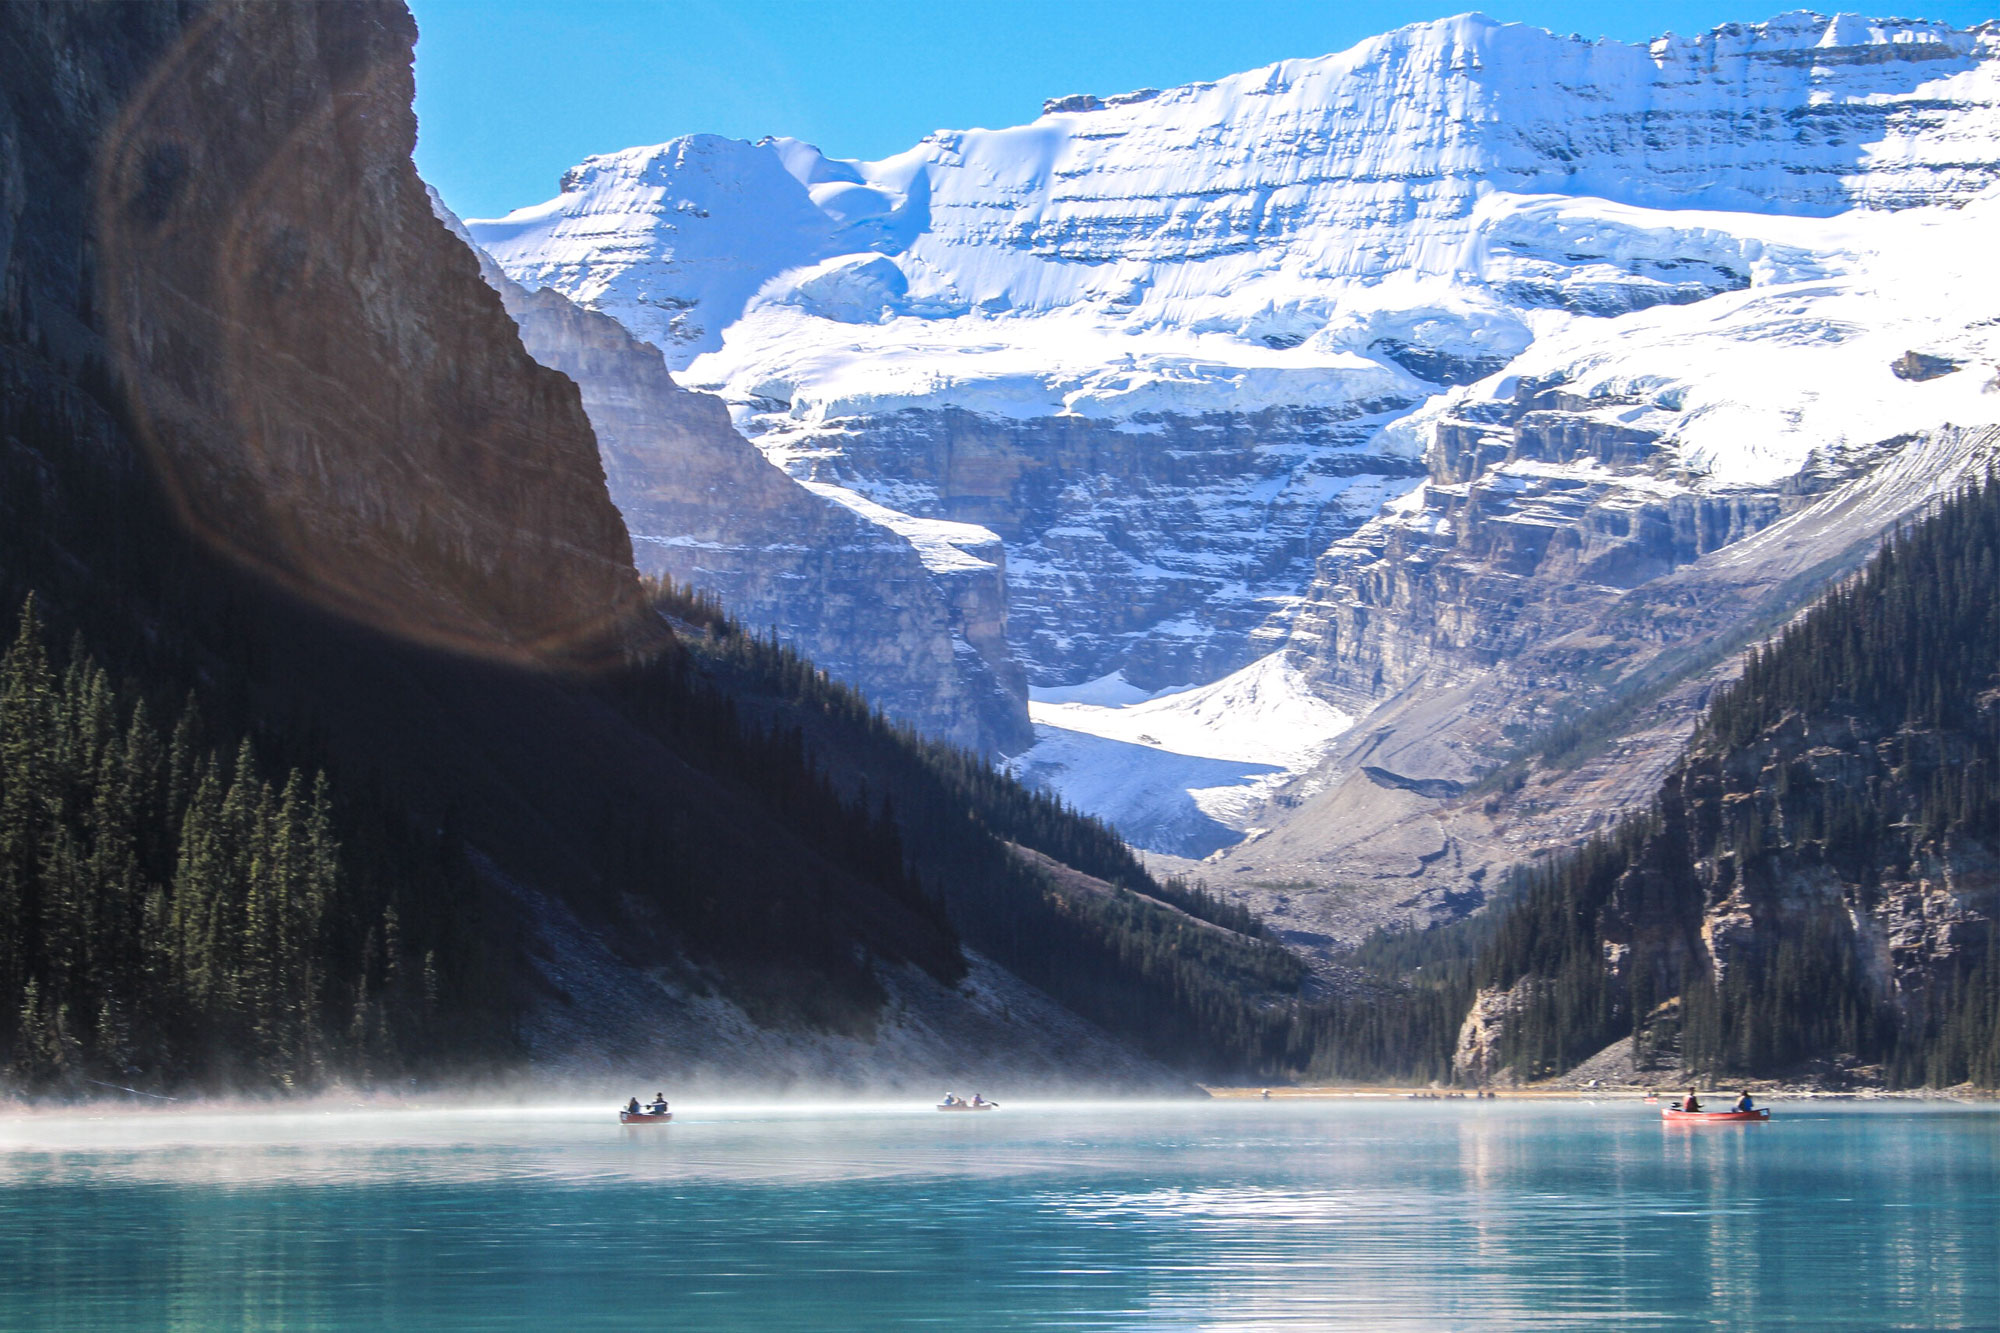 Lake-Louise in the morning is one of the top things to do in Banff